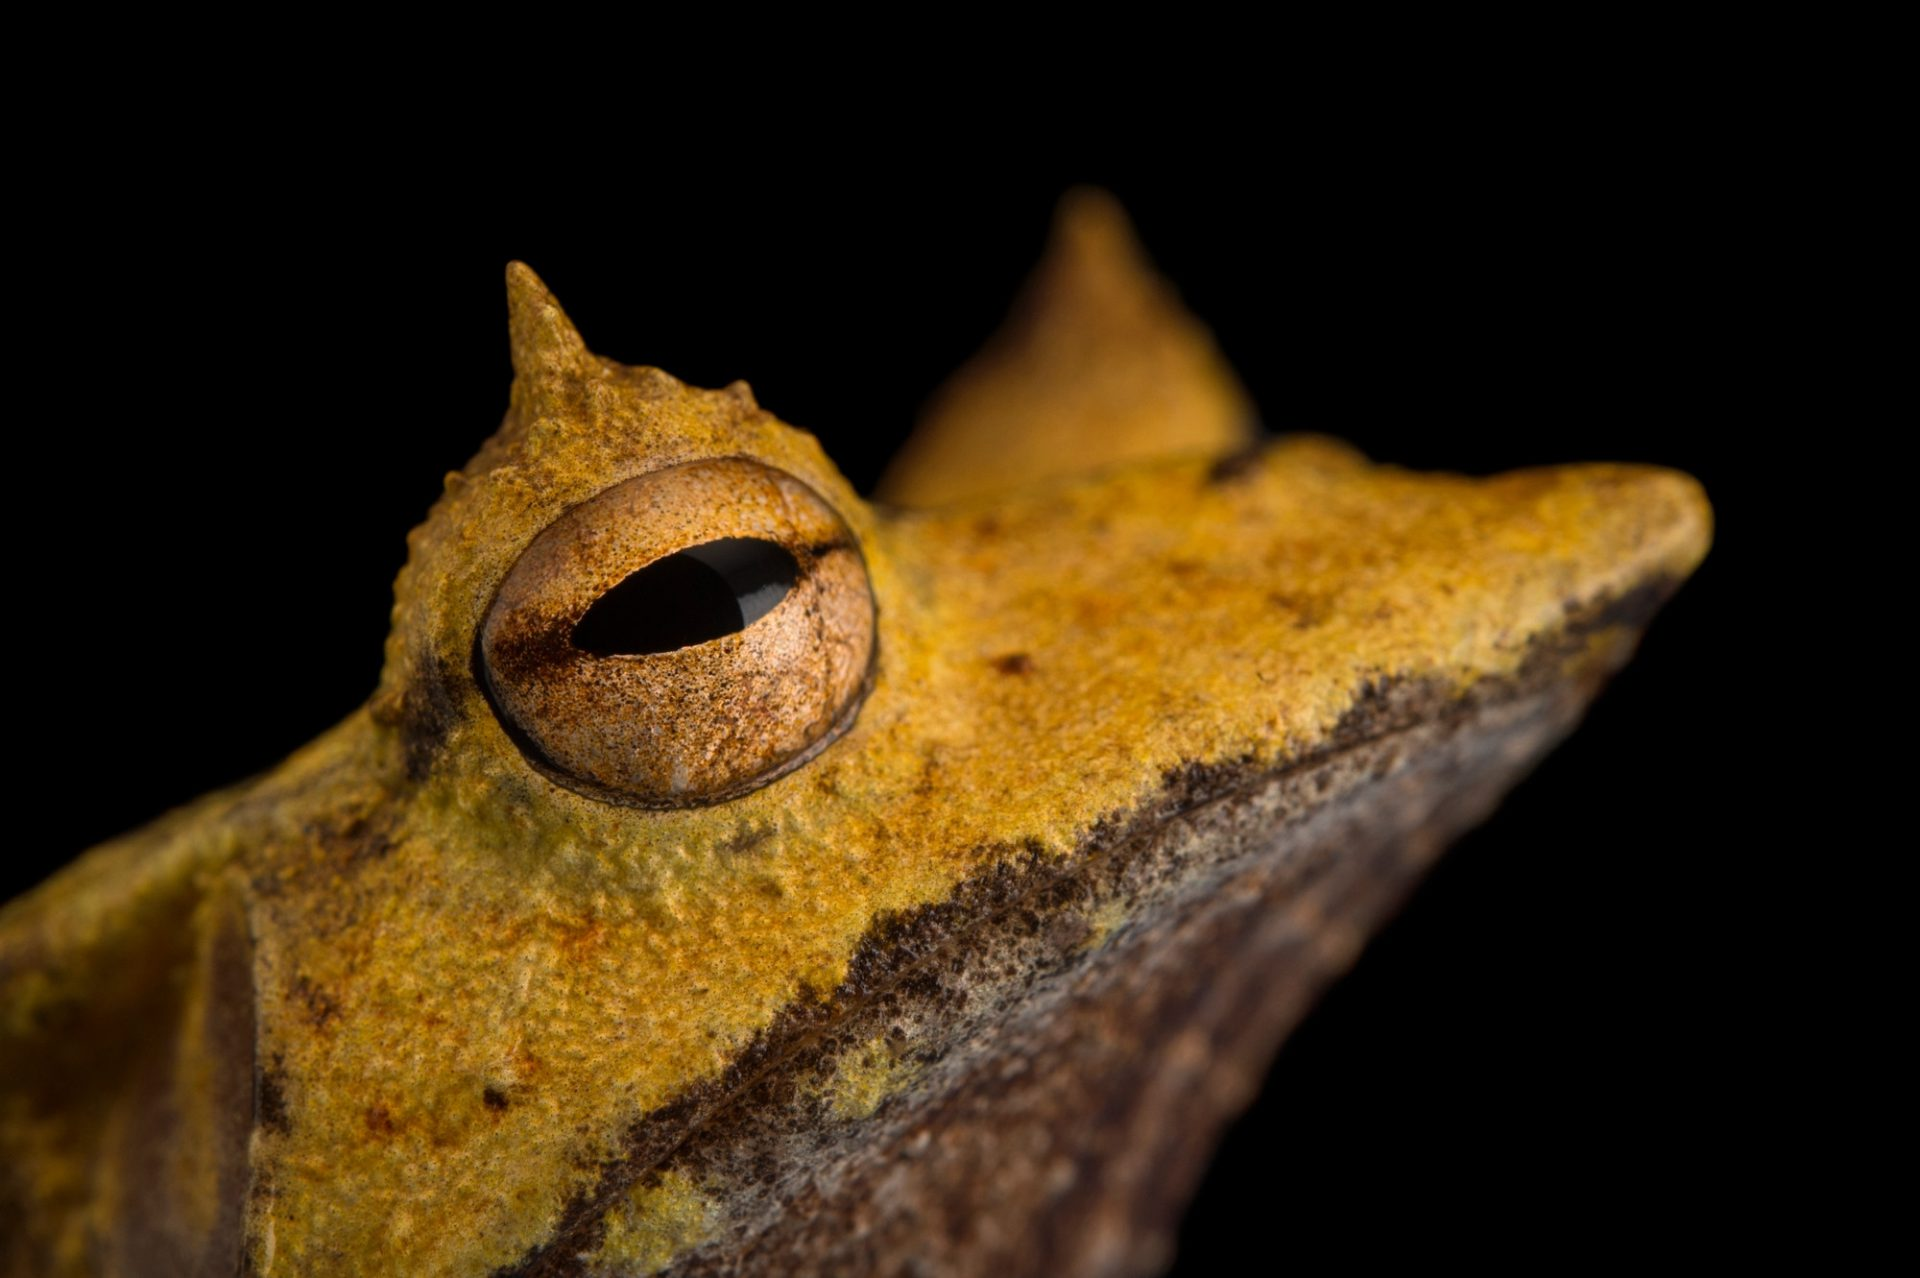 Photo: Banded horned treefrog (Hemiphractus fasciatus) at El Valle Amphibian Center.